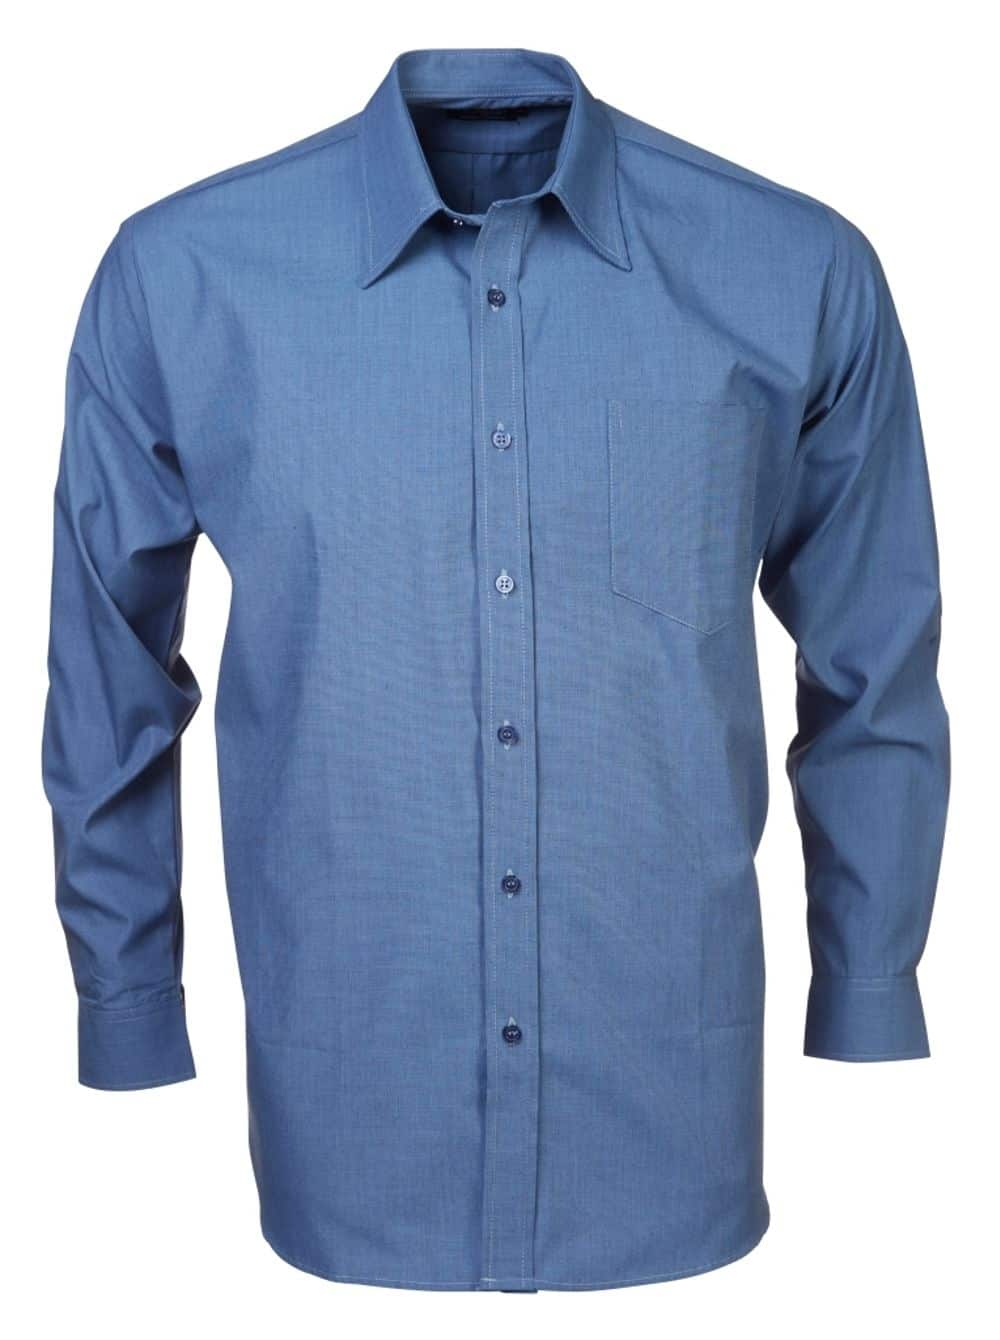 Classic L/S Lounge Shirts and Blouses